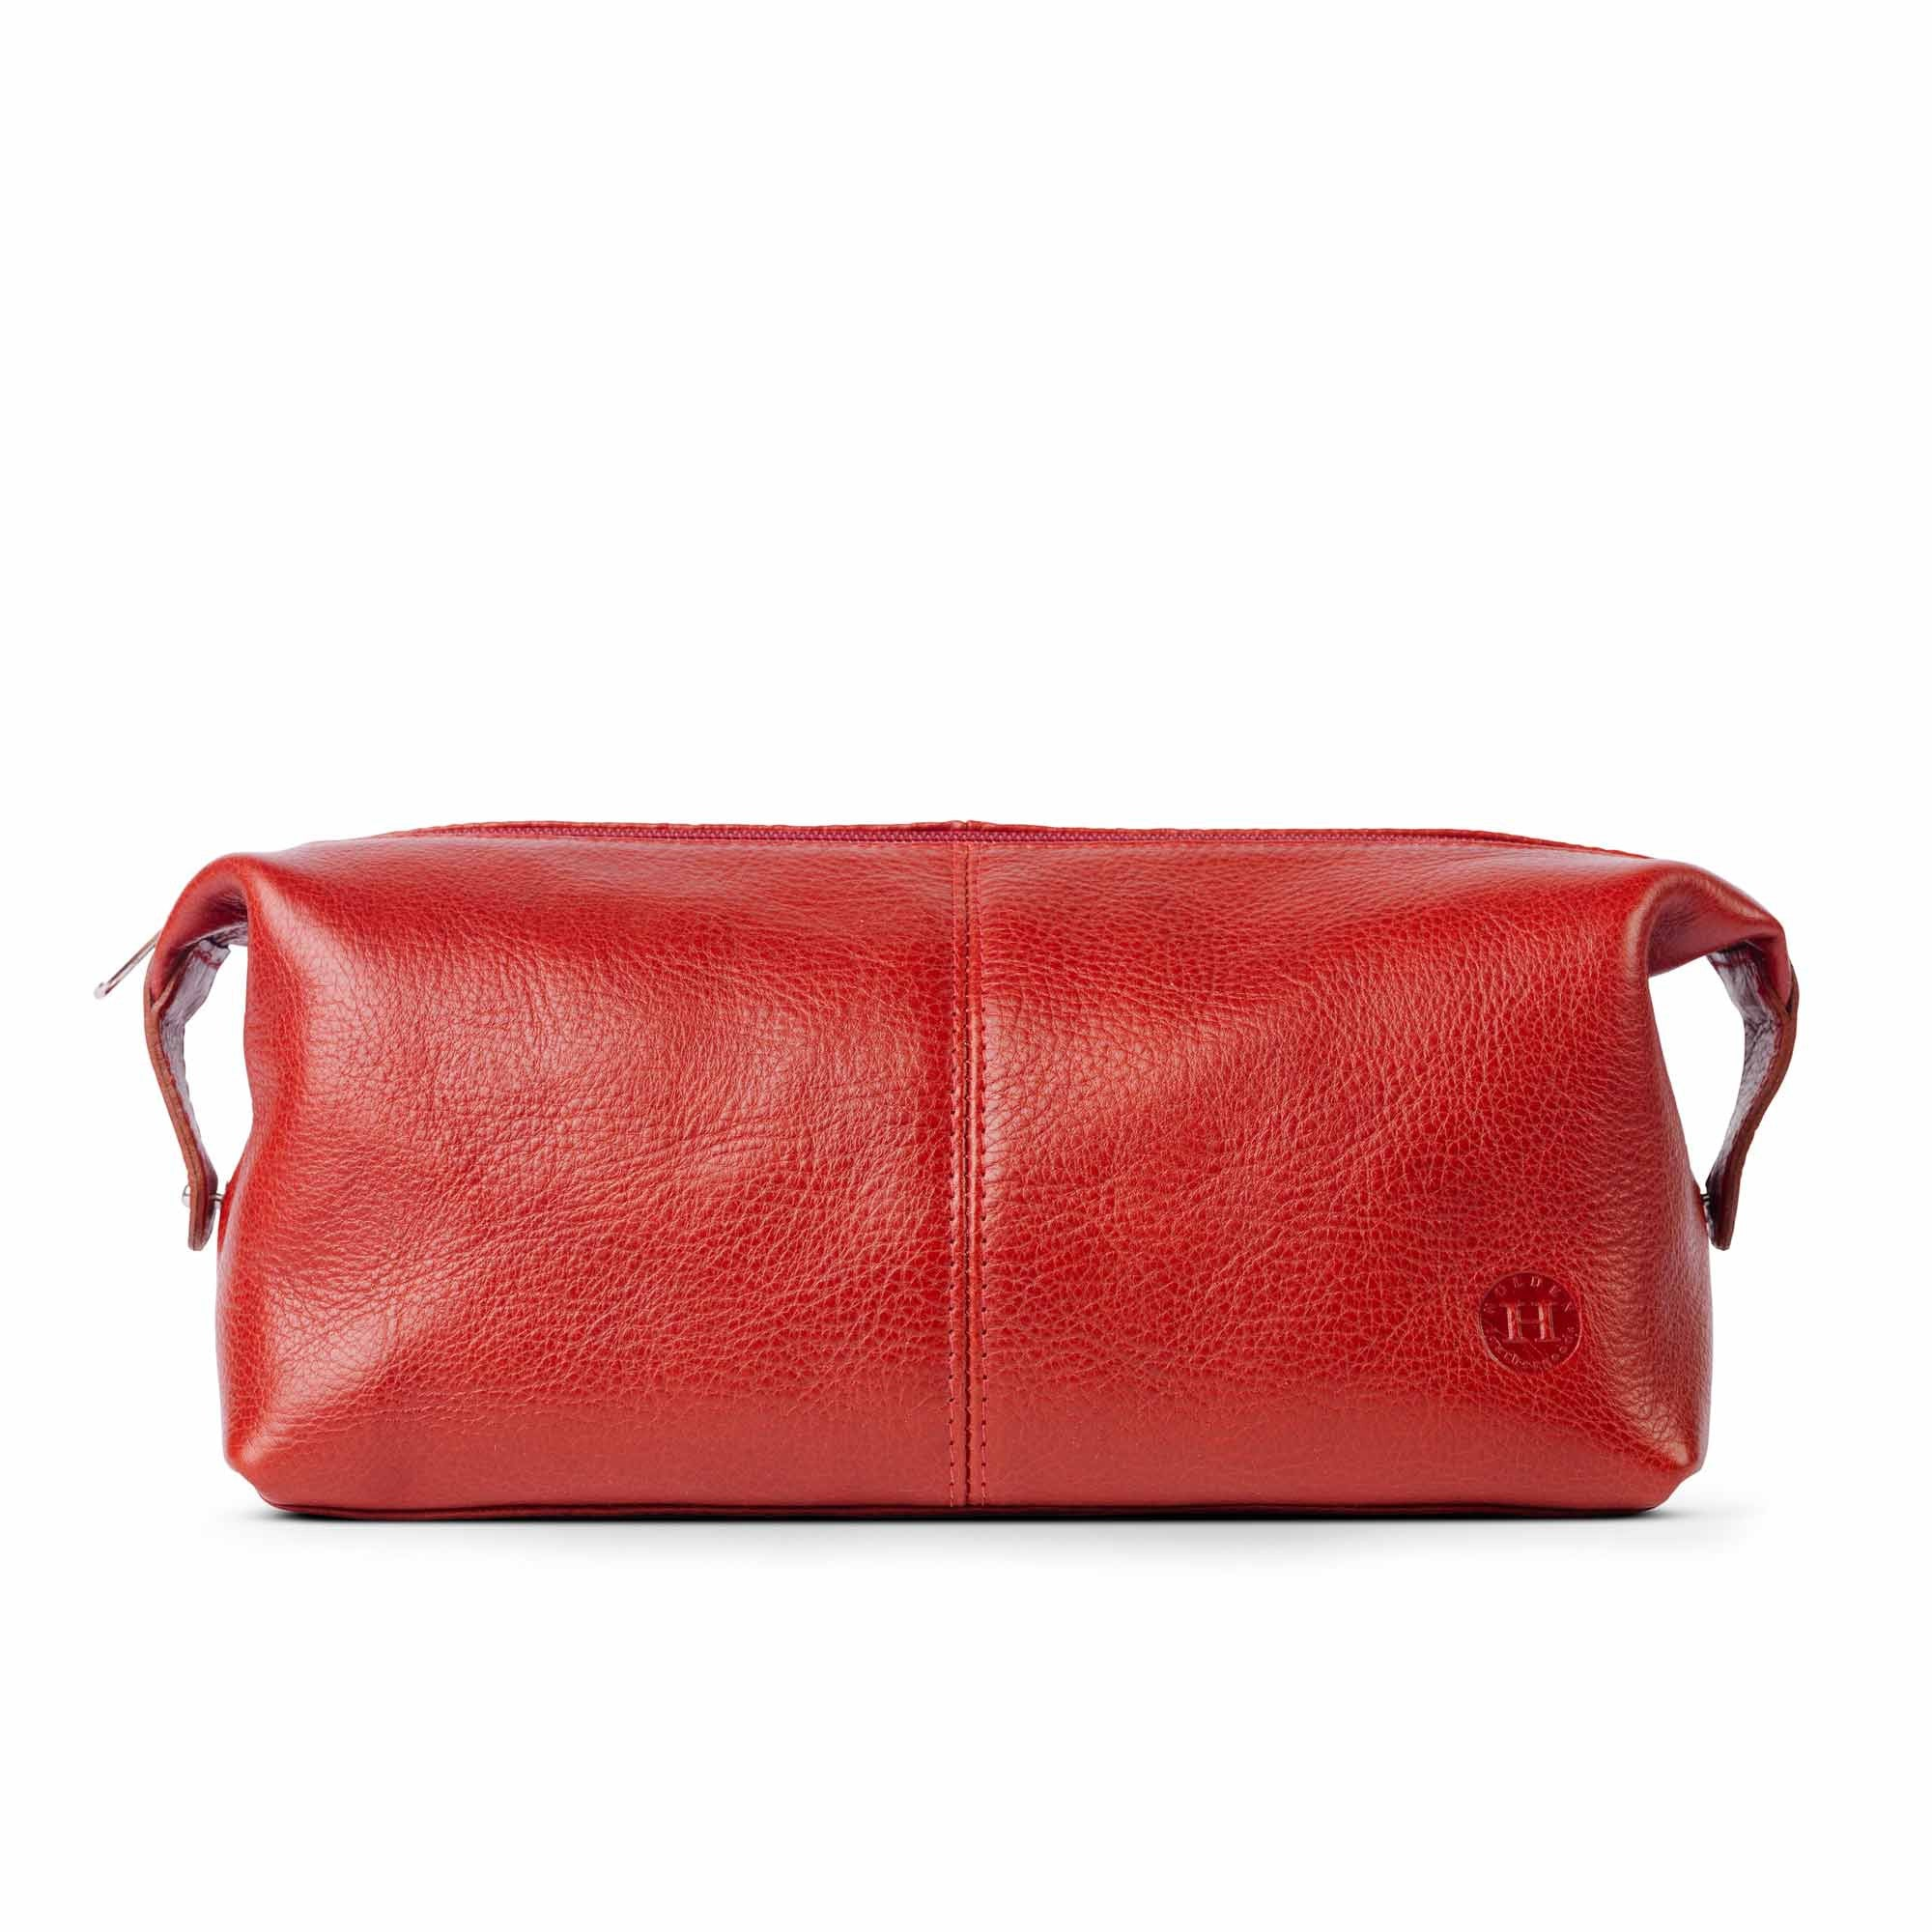 Holden Leather Washbag Red - Holden Leathergoods, leather bags handmade in Ireland